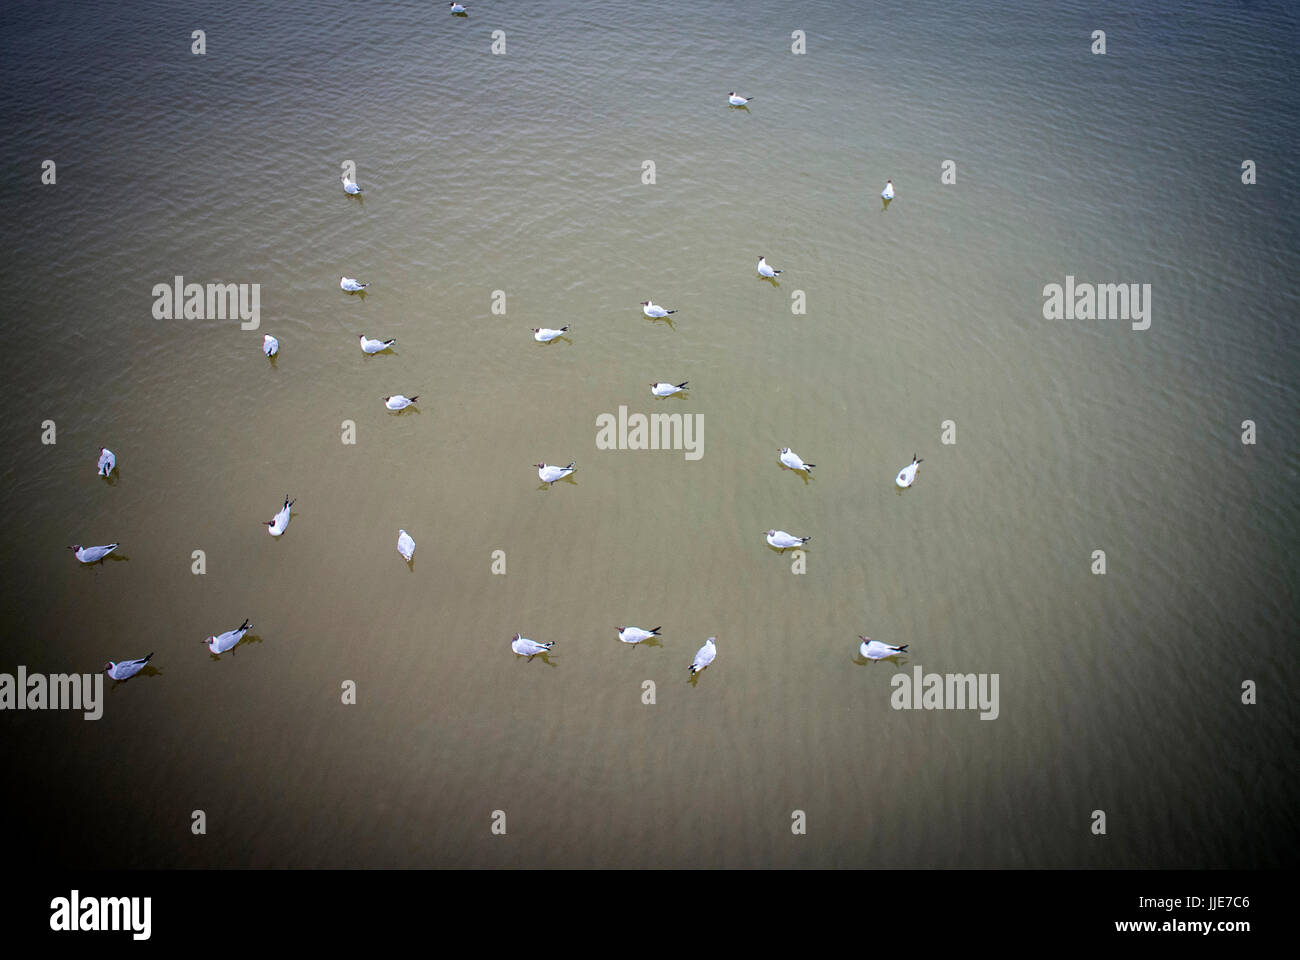 Seagulls at the Spa seaside town of Zinnowitz Mecklenburg-Vorpommern on the northern German island of Usedom on - Stock Image